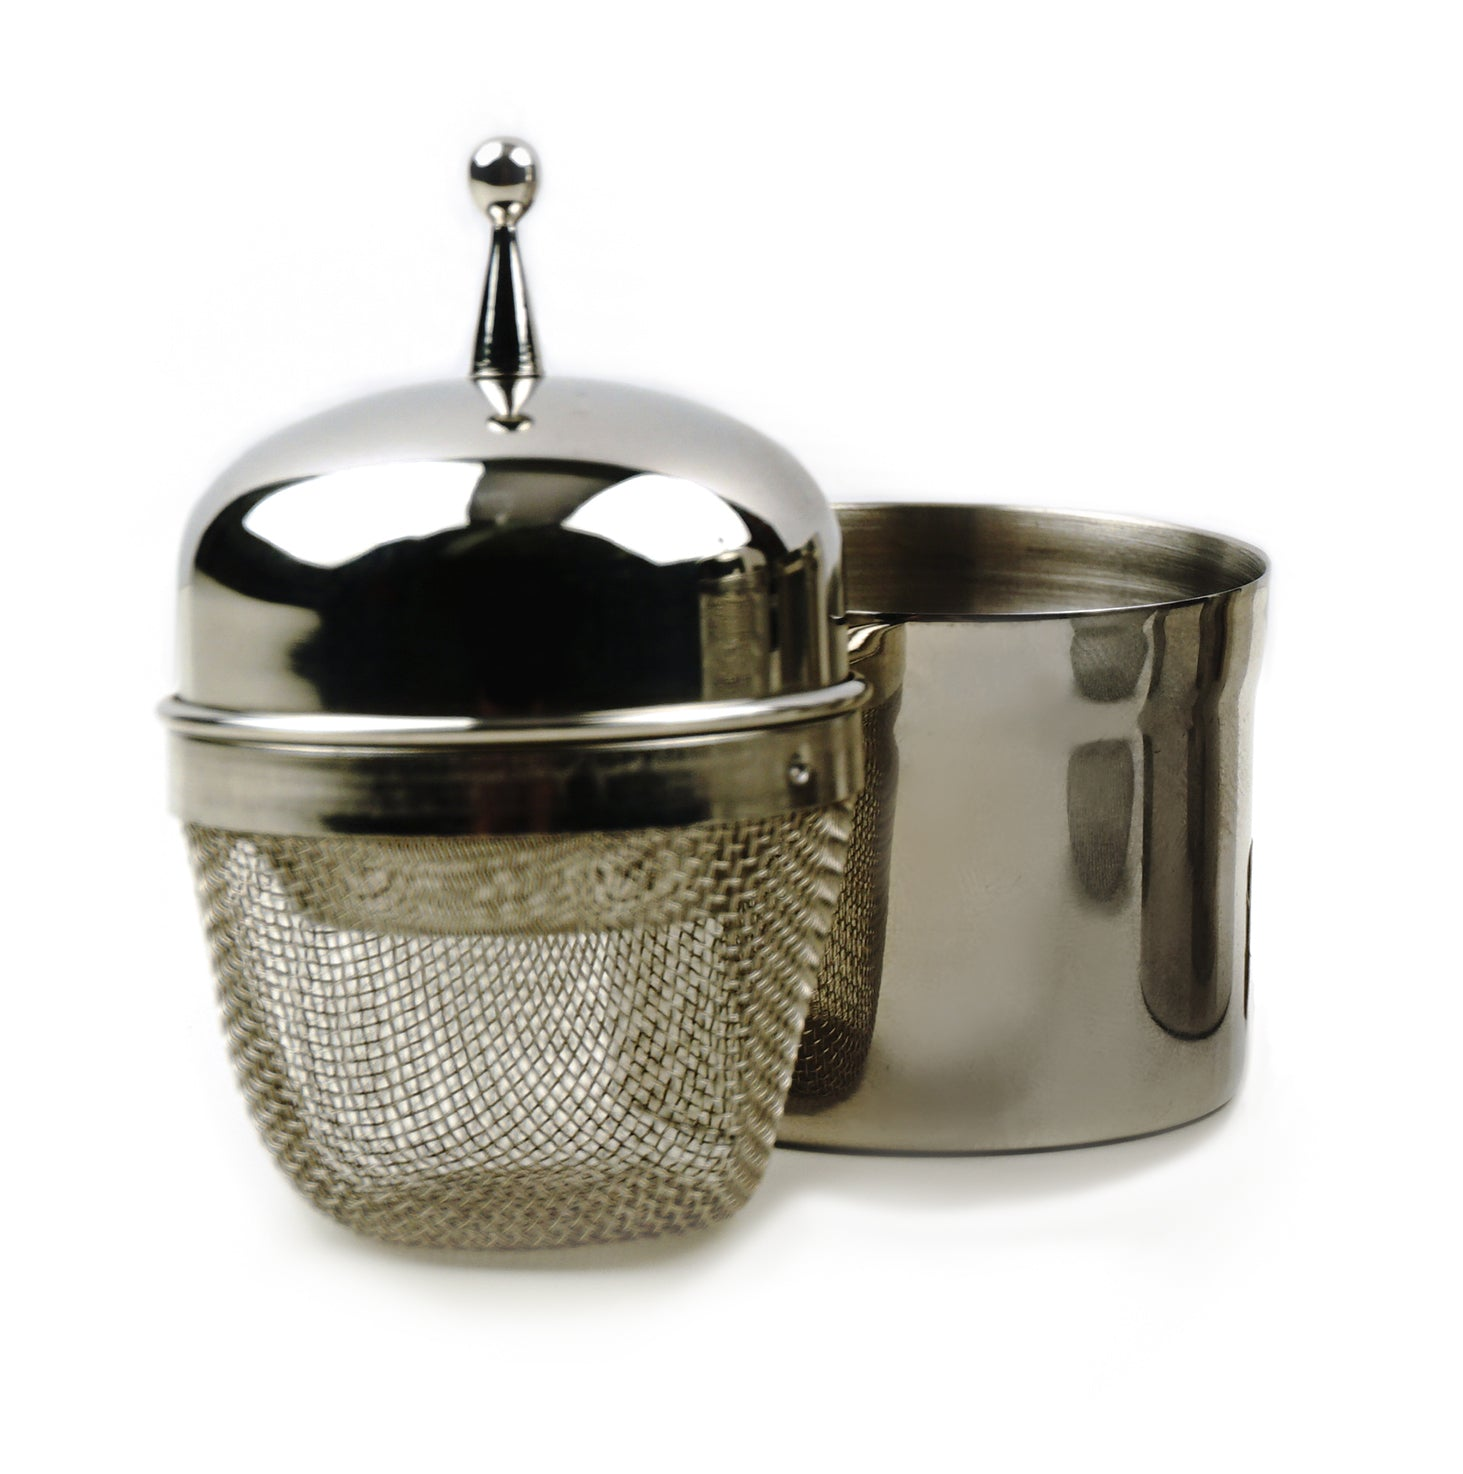 Floating Tea Infuser - Ettiene Market